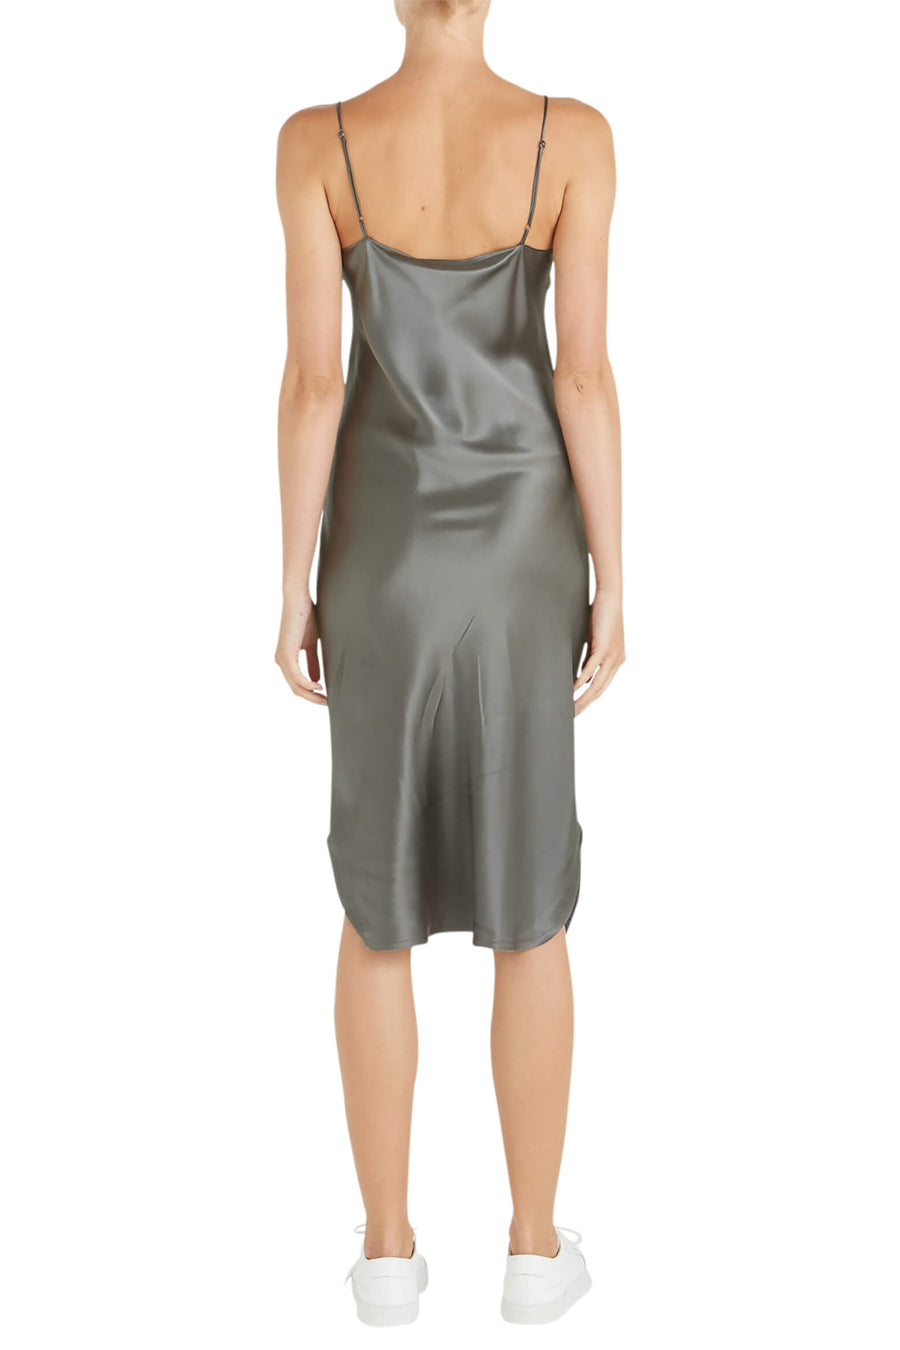 Nili Lotan Short Cami Dress in Gunmetal from The New Trend